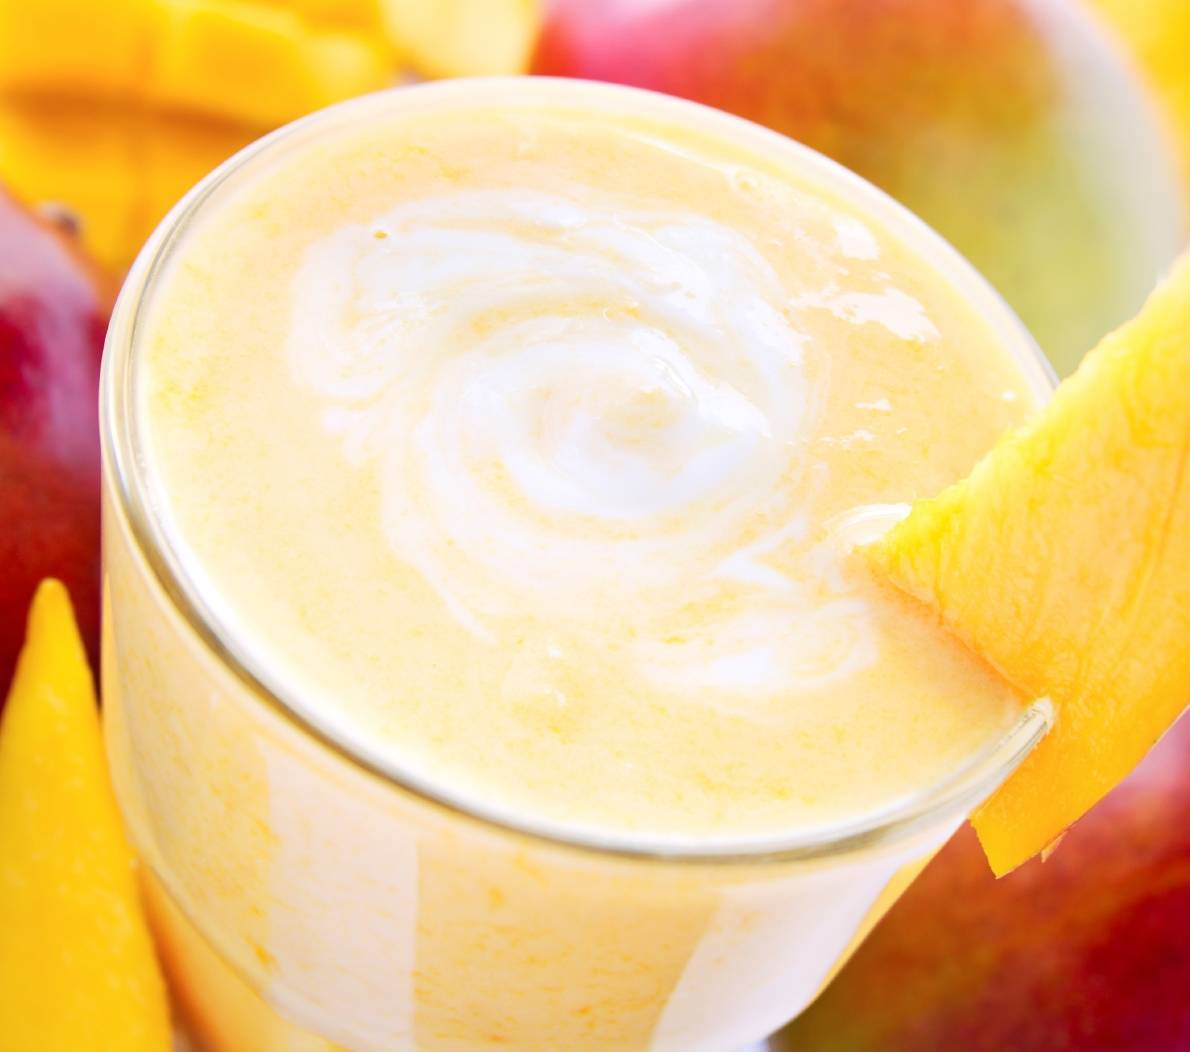 LeanBiotics Tropical Mango Smoothie